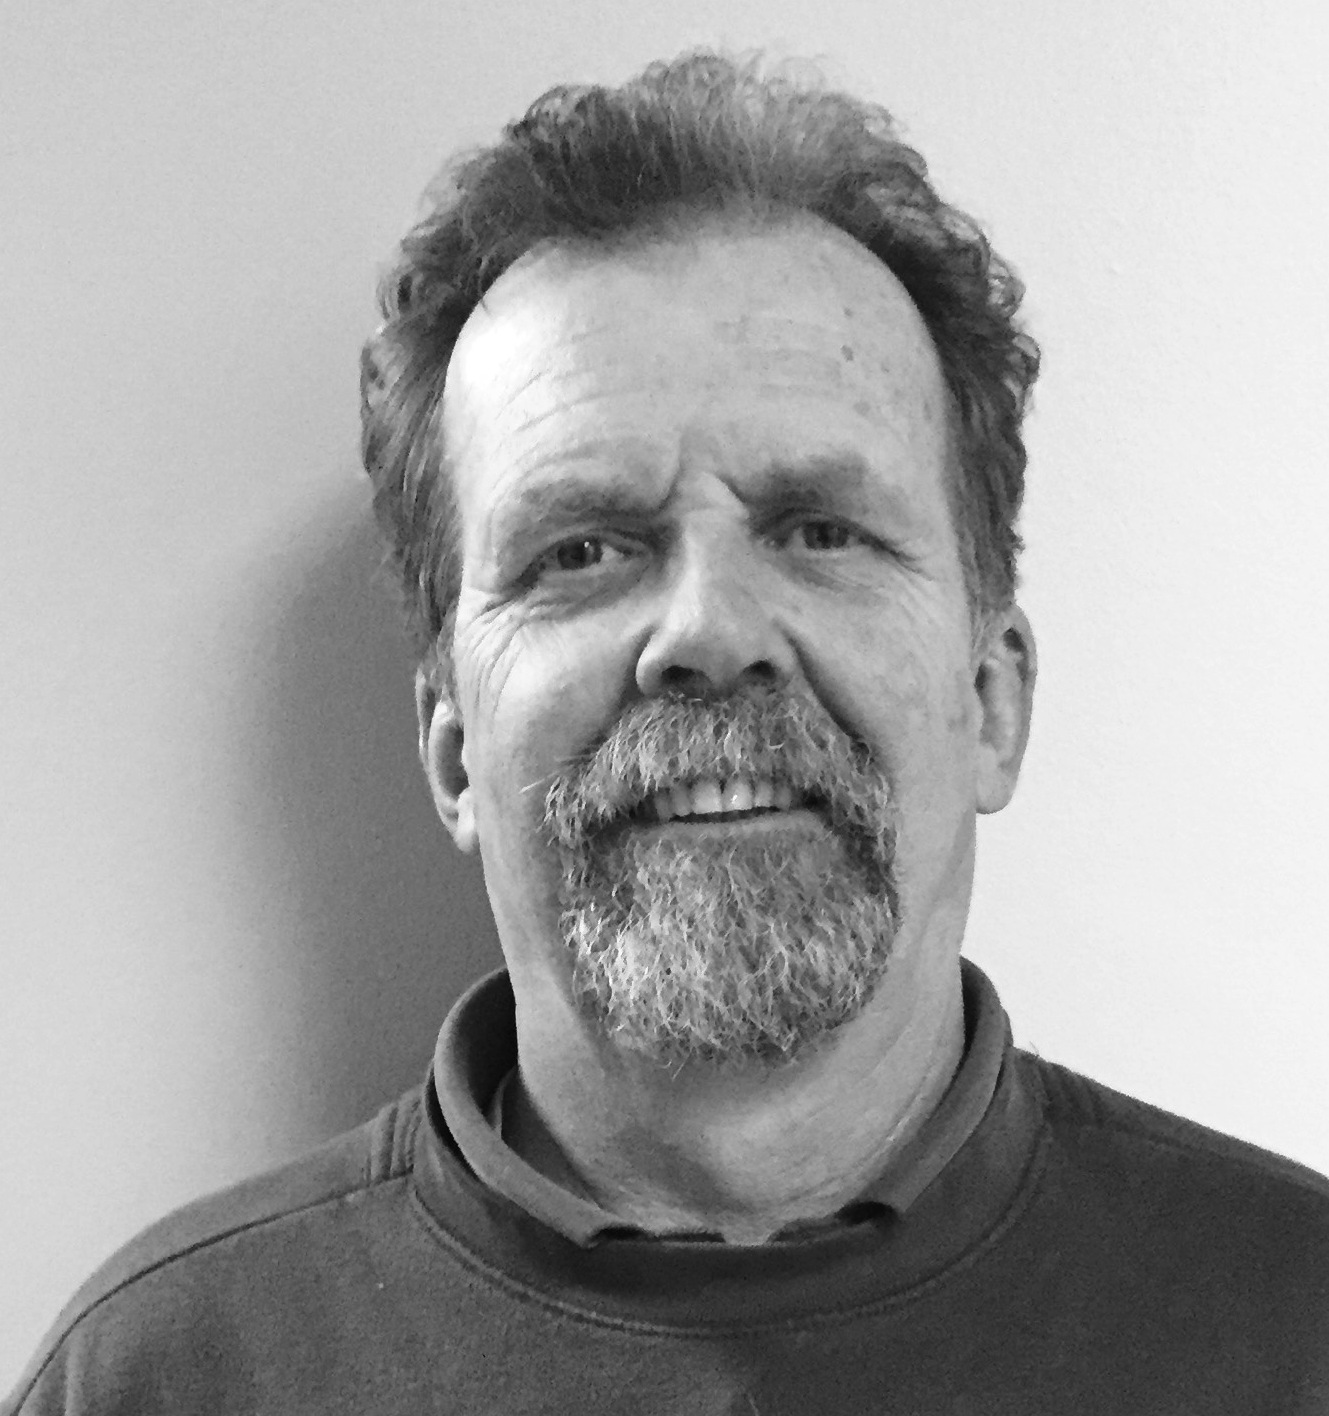 <p><strong>Bob Litke</strong>Master Trainer 13+ Years of Experience</a></p>